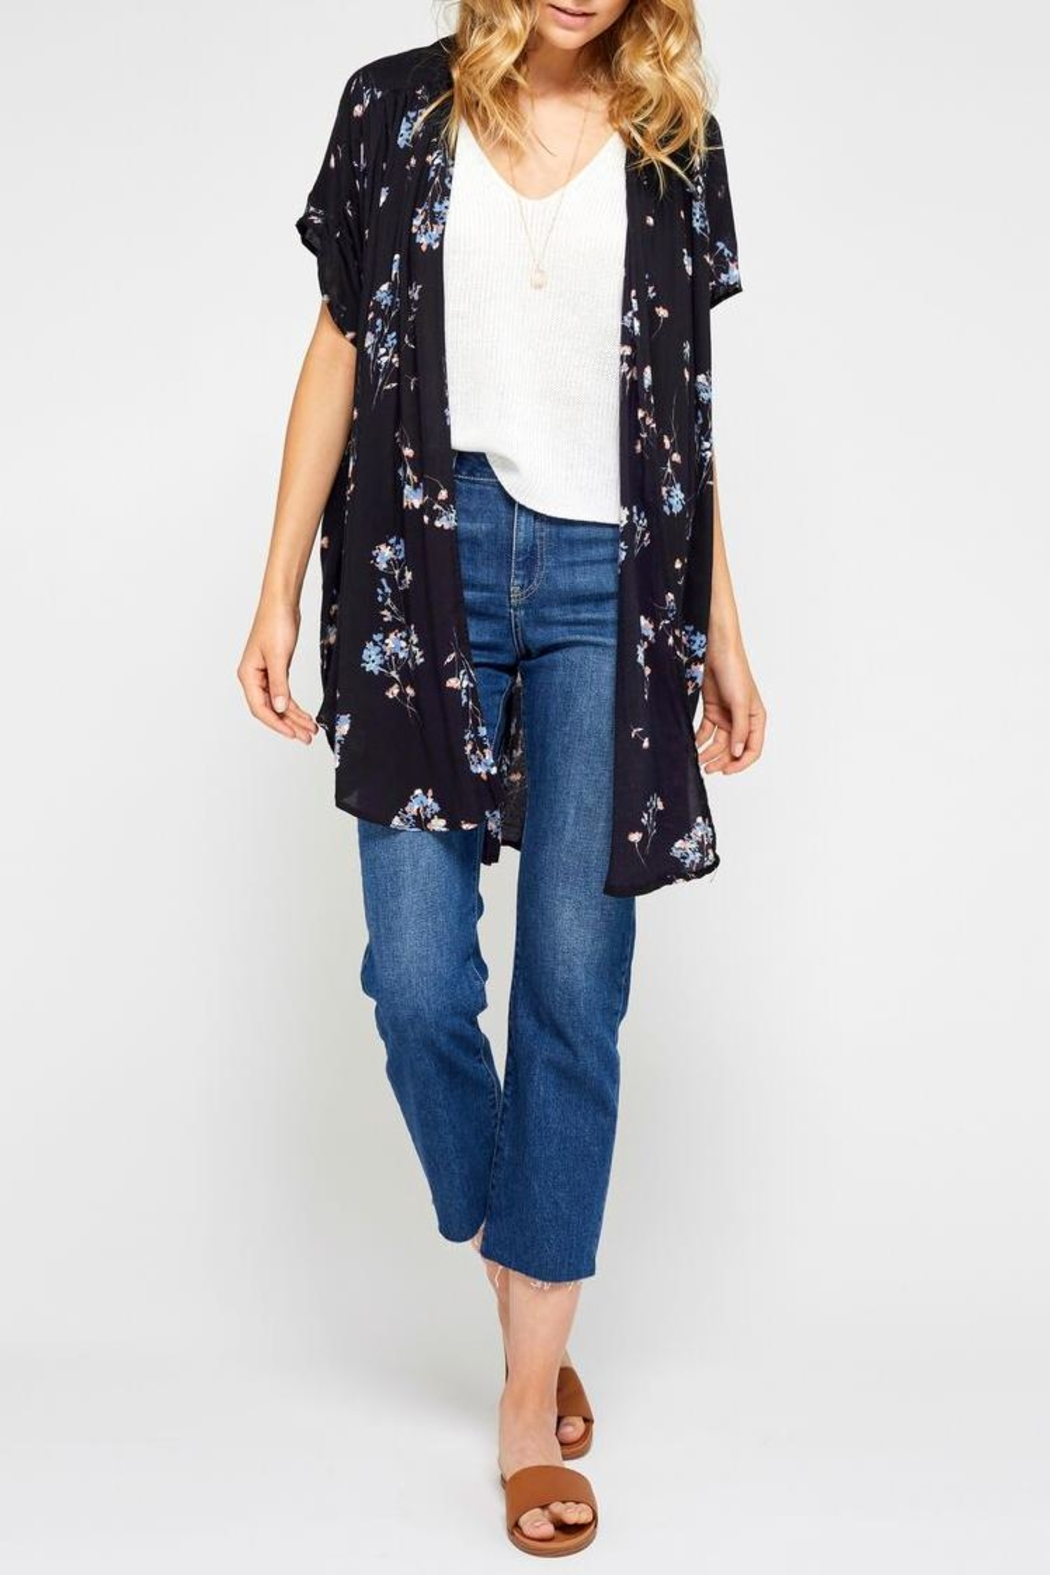 d6d35f88e2ee Gentle Fawn Black Floral Kimono from Ontario by Steel Style Garage ...